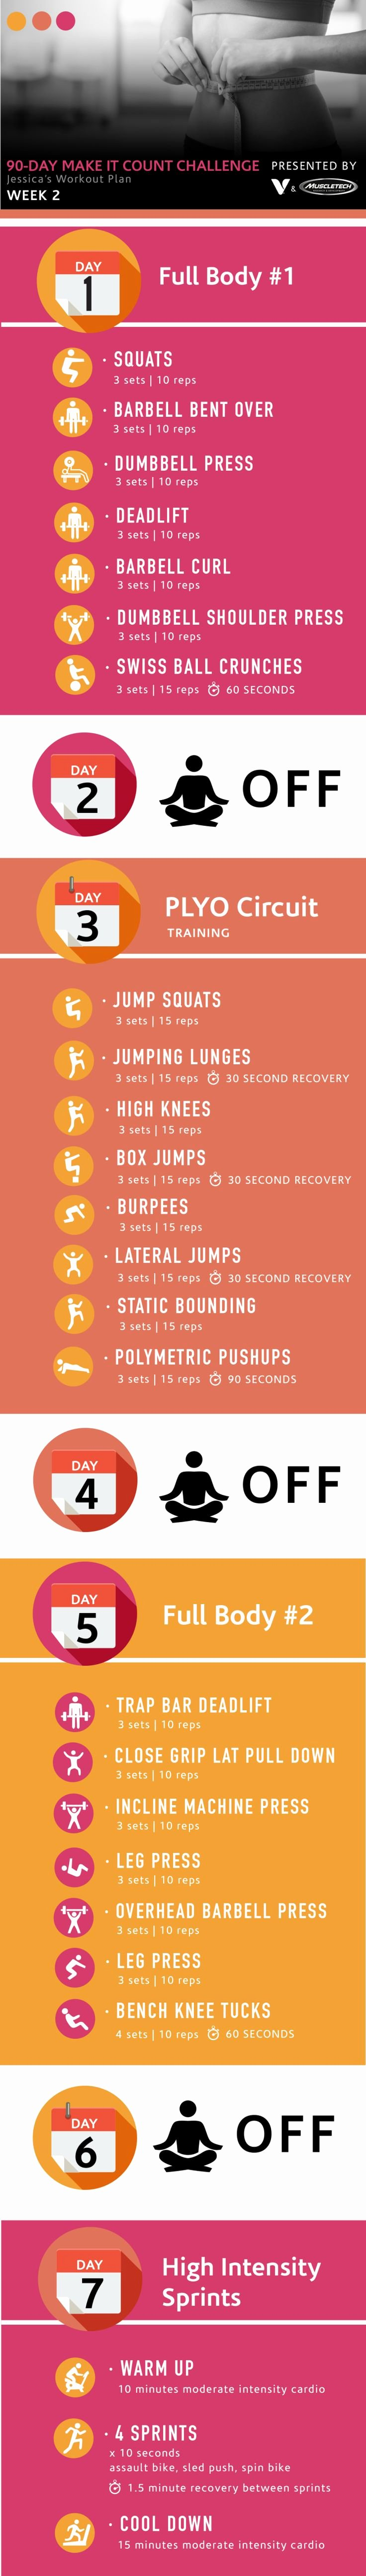 90 Day Workout Plan Unique 1000 Ideas About 90 Day Workout Plan On Pinterest